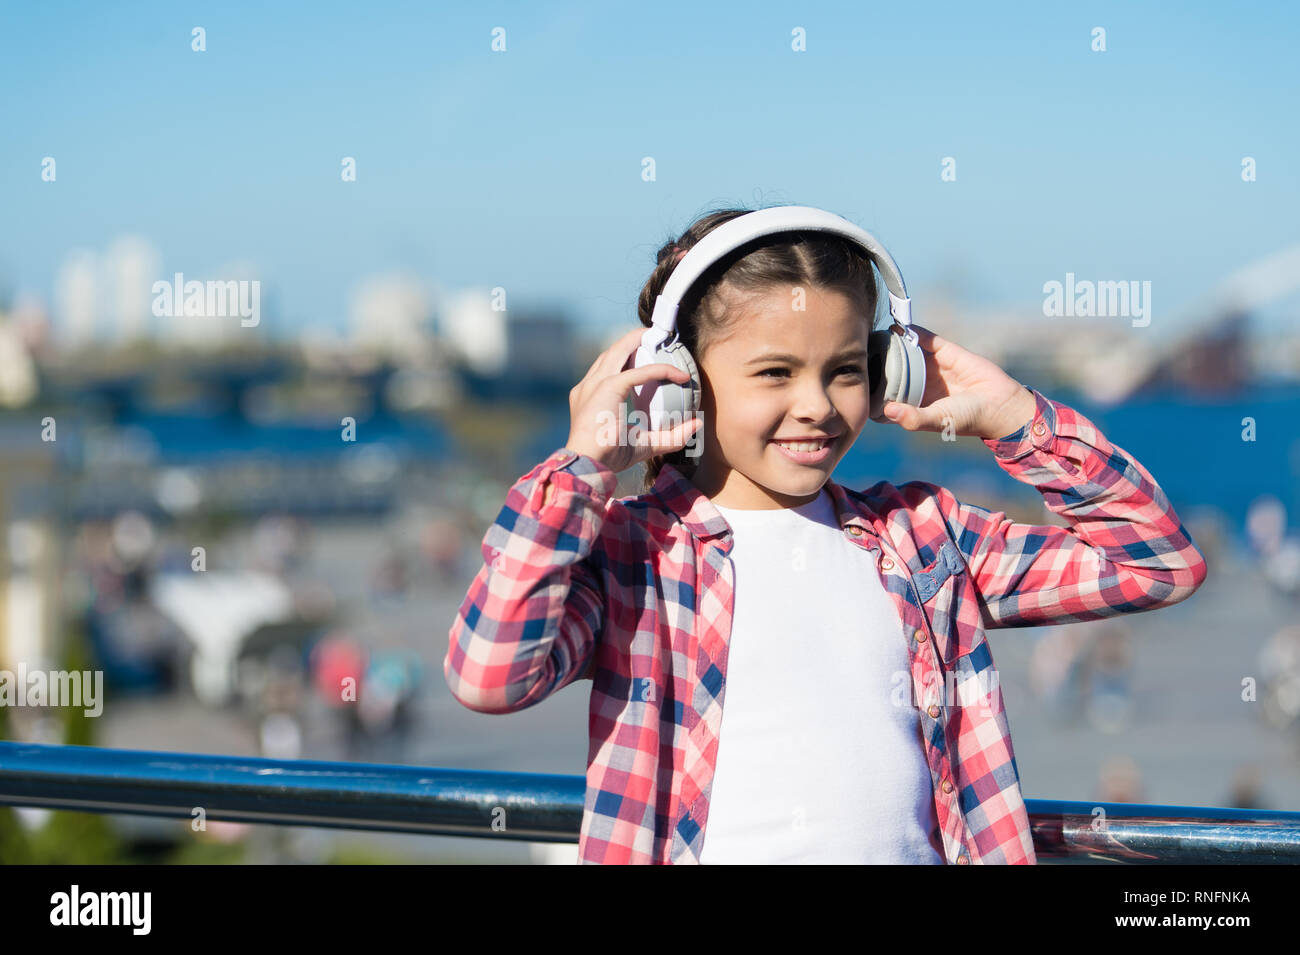 Girl child listen music outdoors with modern headphones. Kid little girl listen song headphones. Music account playlist. Customize your music. Discovering new music styles is great way into culture. - Stock Image